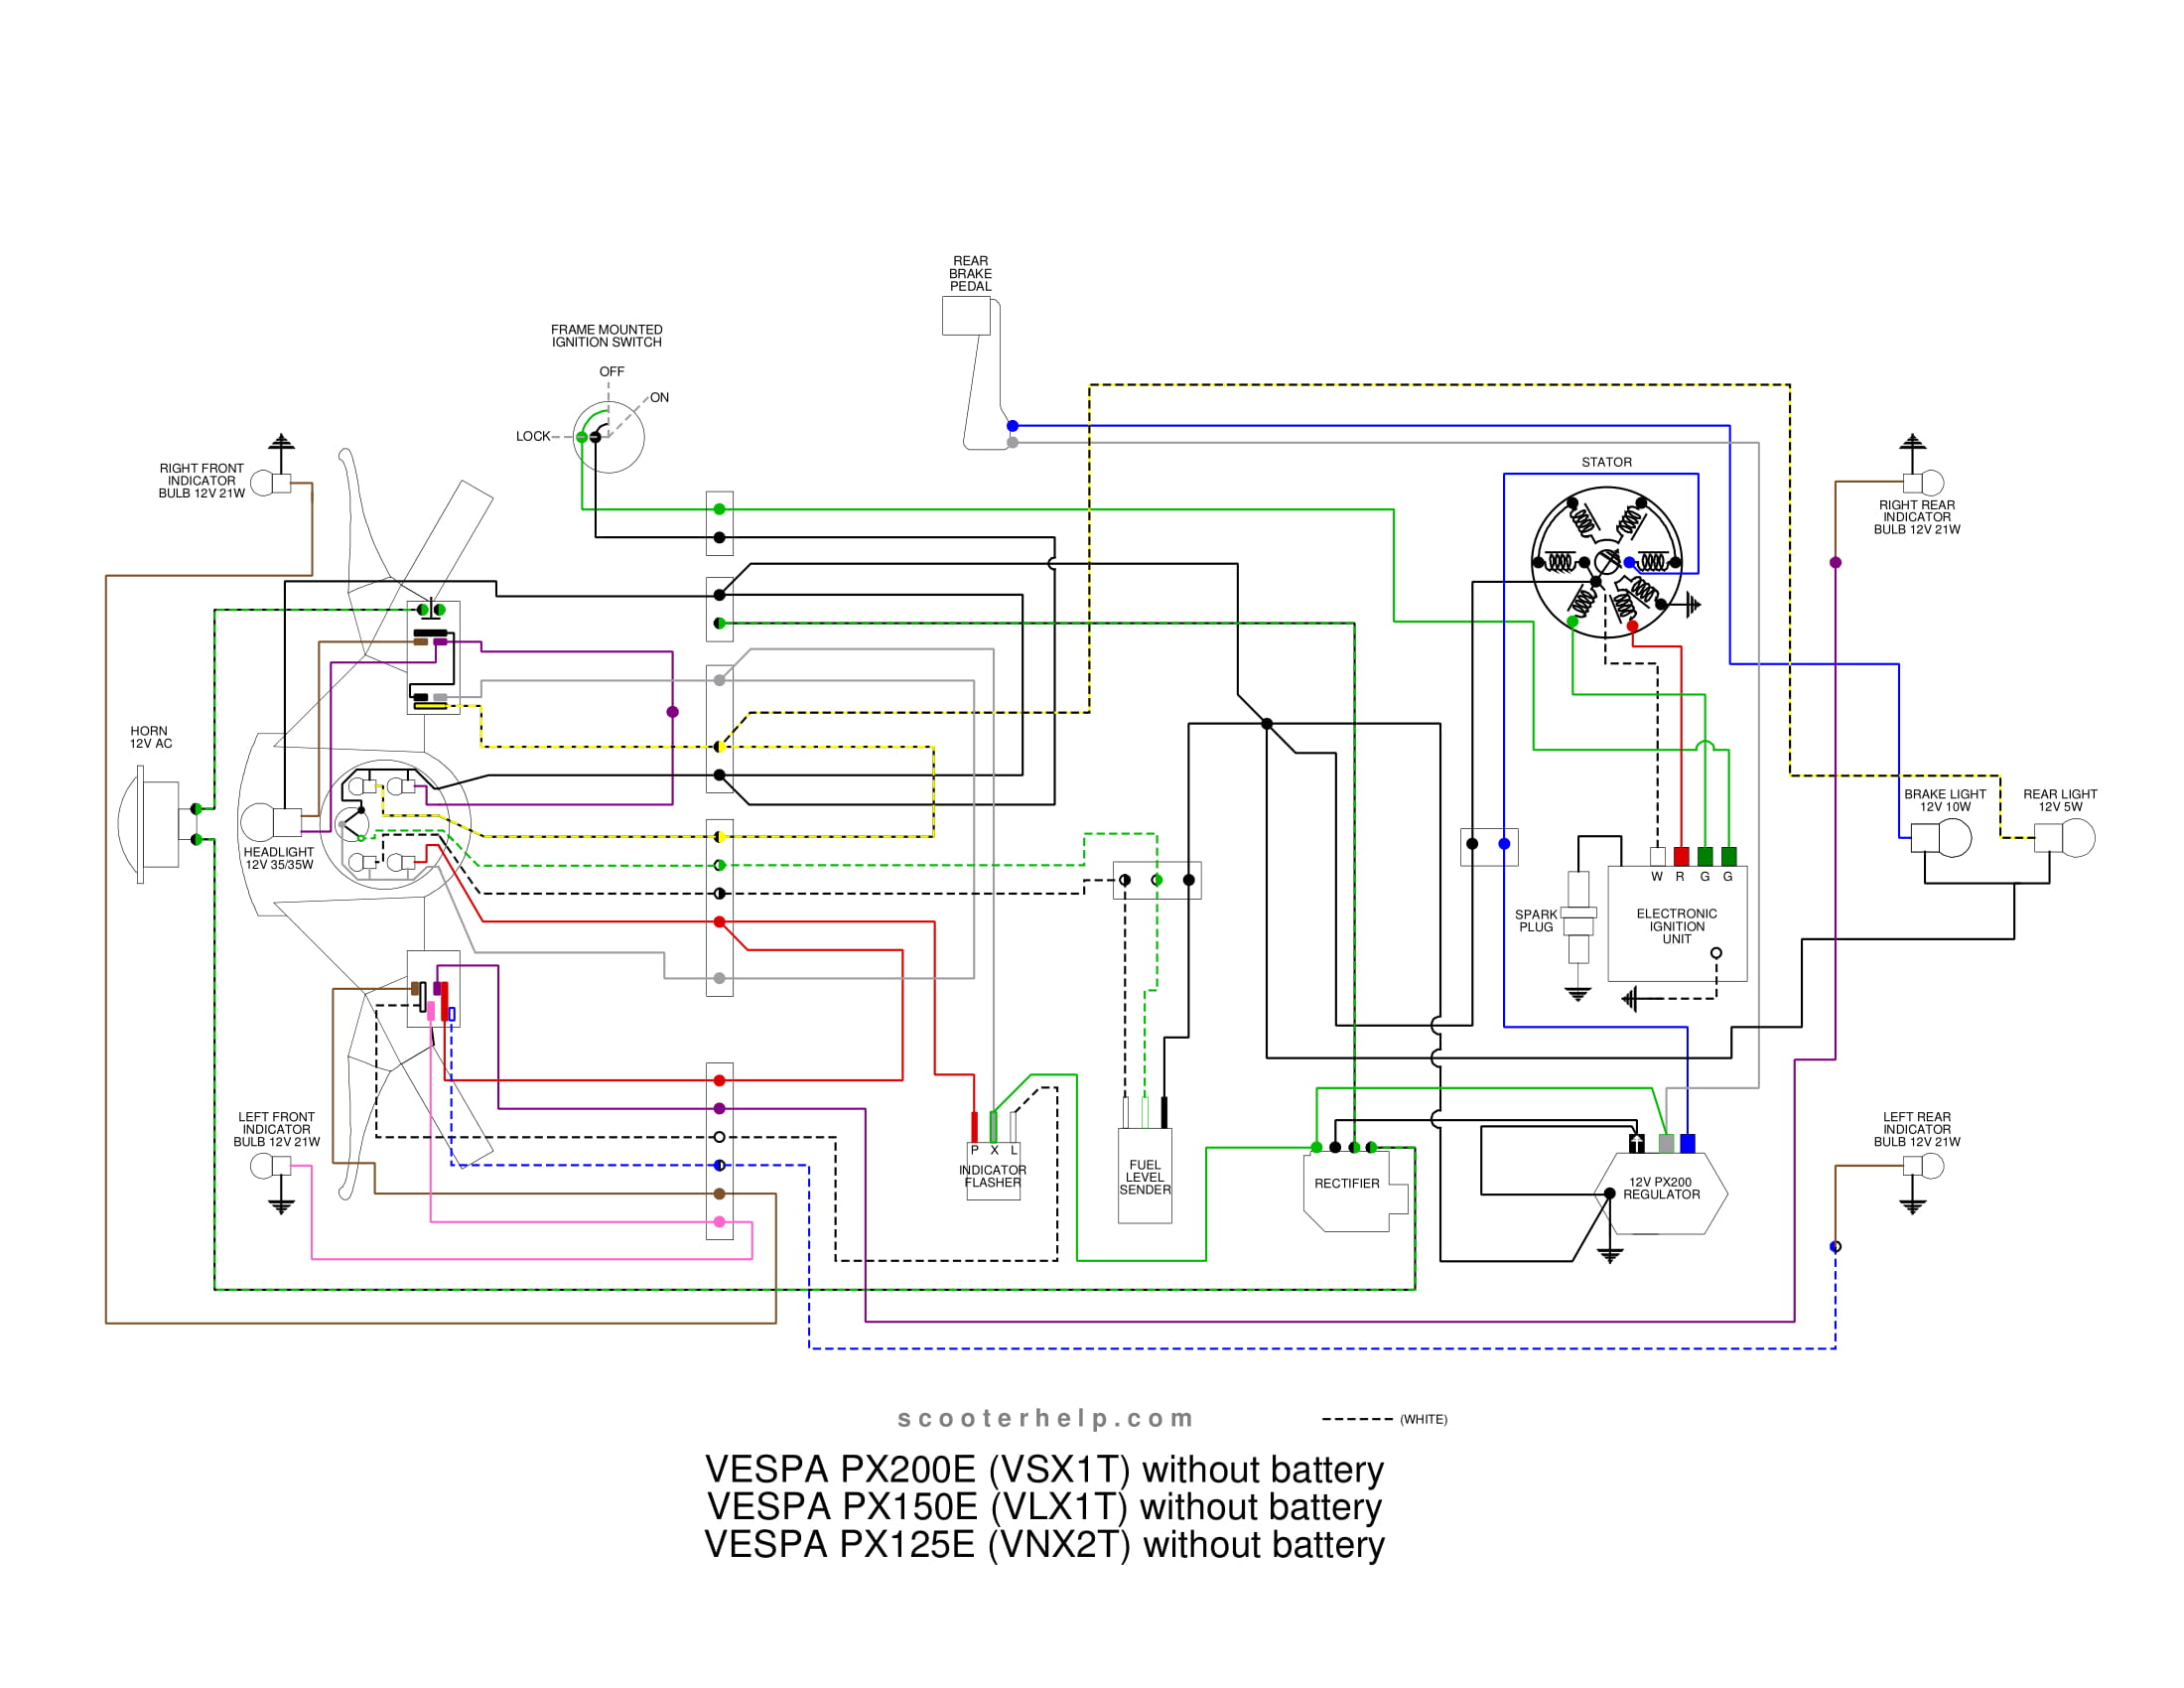 VSX1T.px200e.nobatt scooter help px125e (vnx2t) vespa p125x wiring diagram at nearapp.co